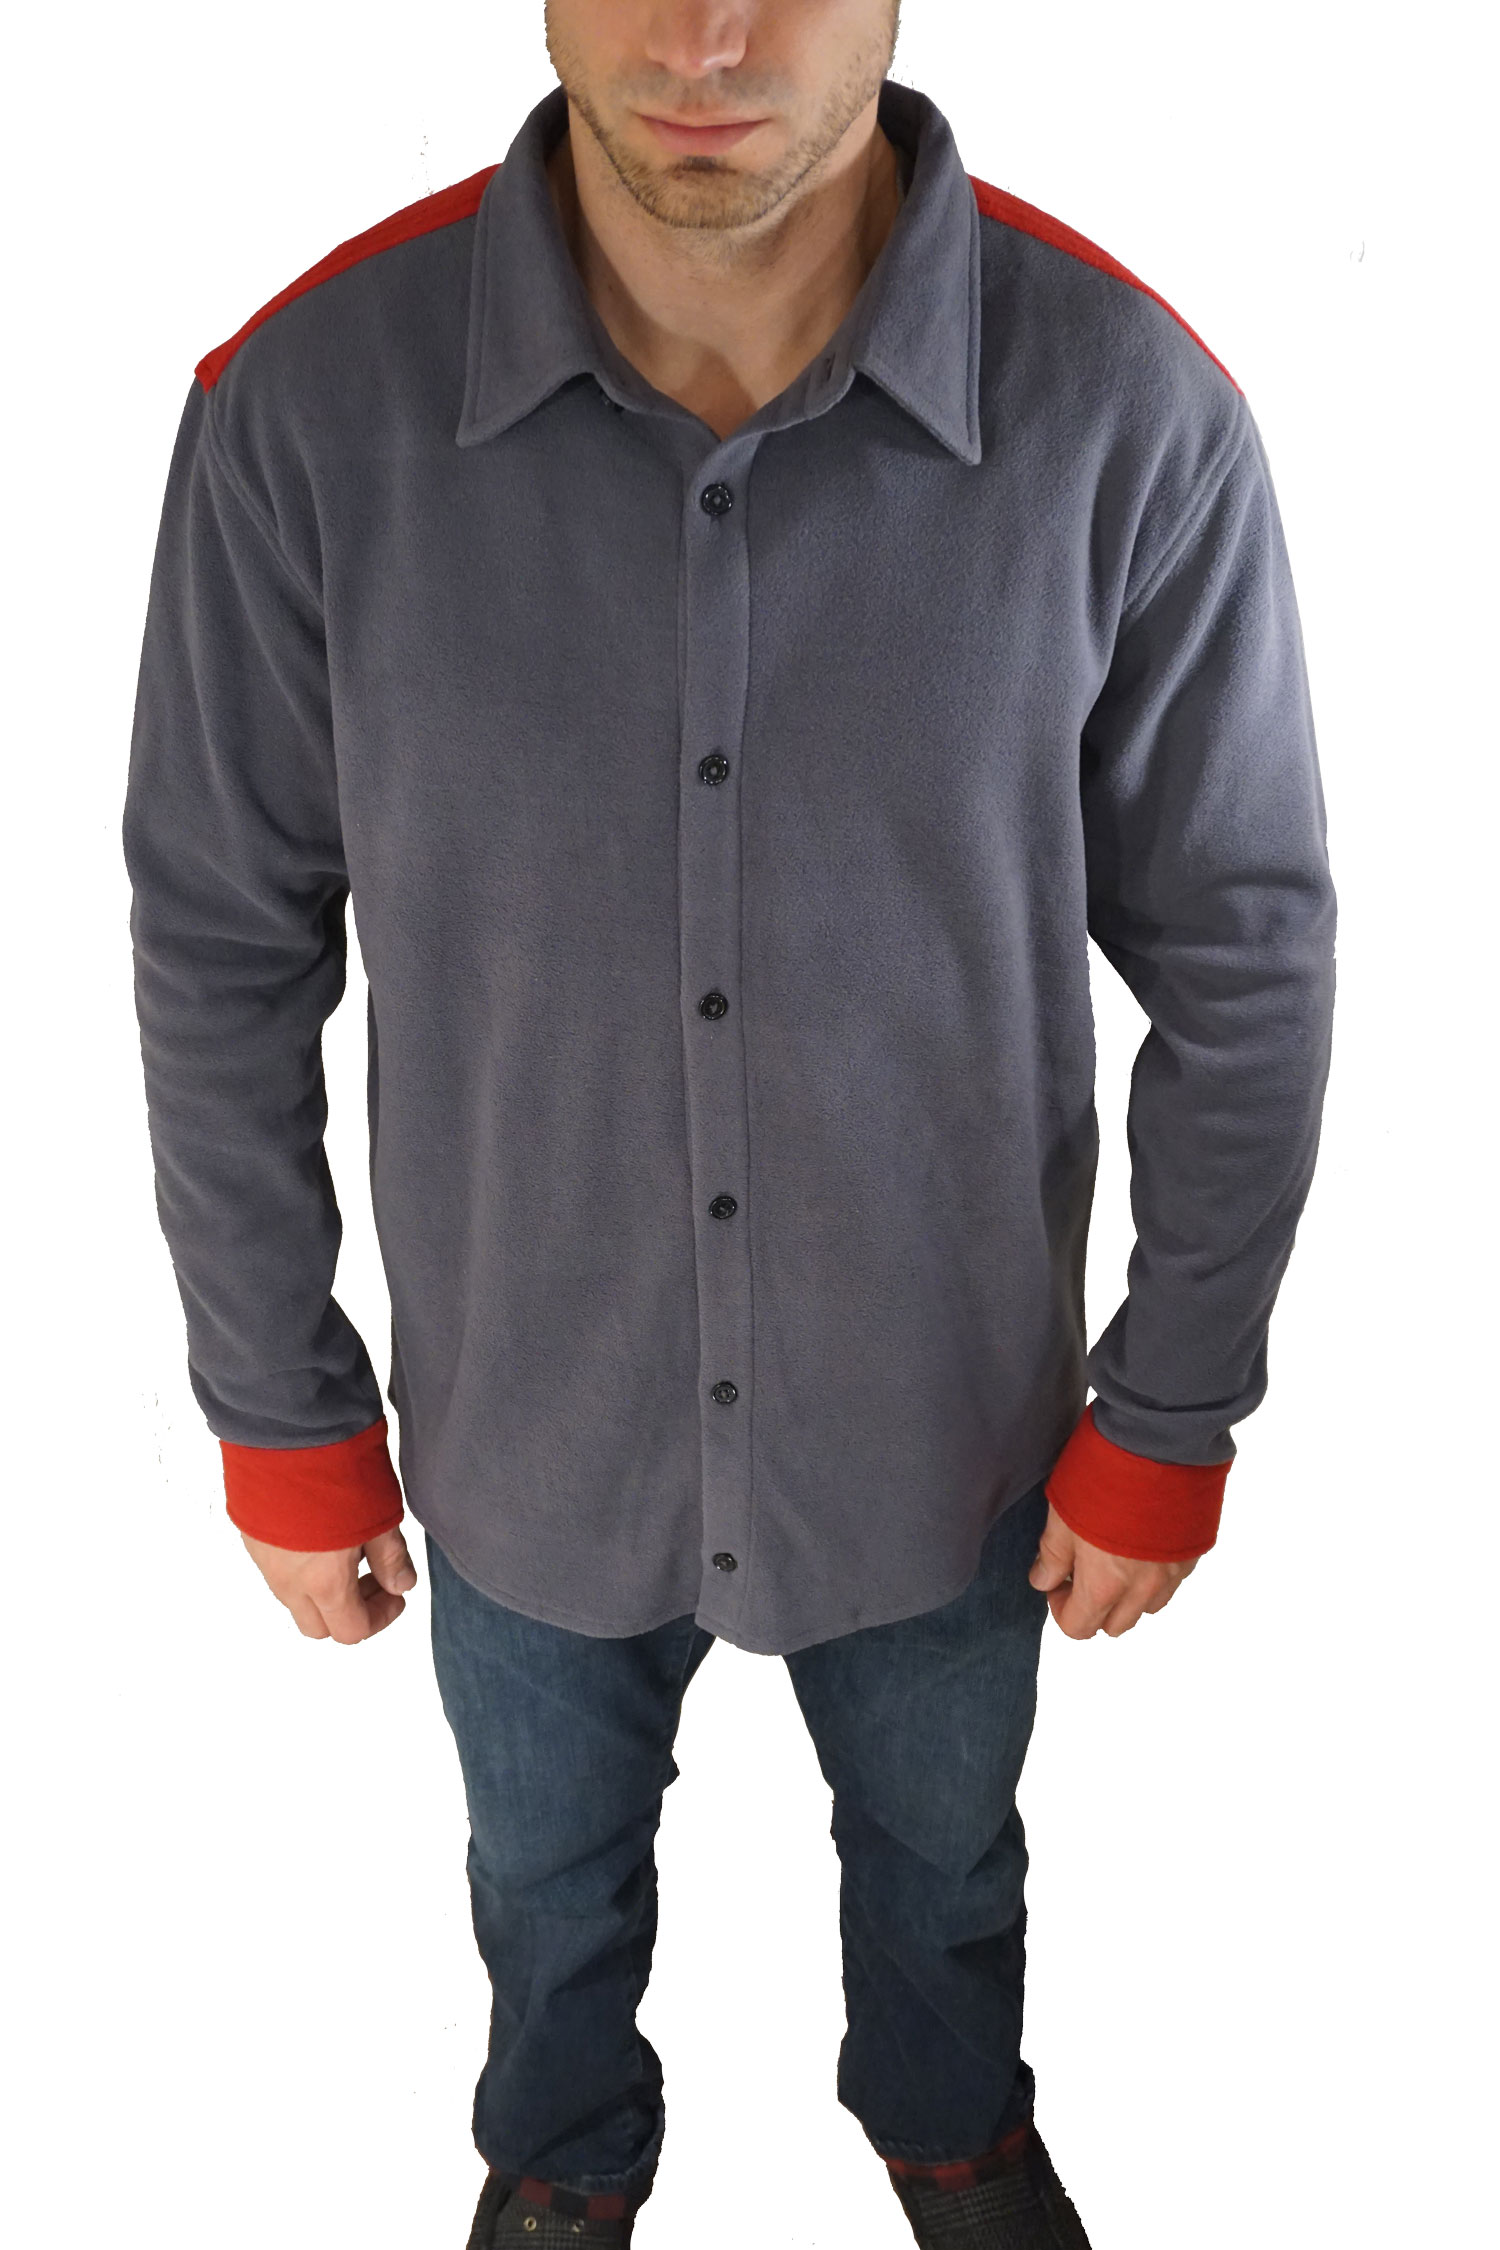 JacketSupplyCo Fariwood ButtonUp Front.jpg